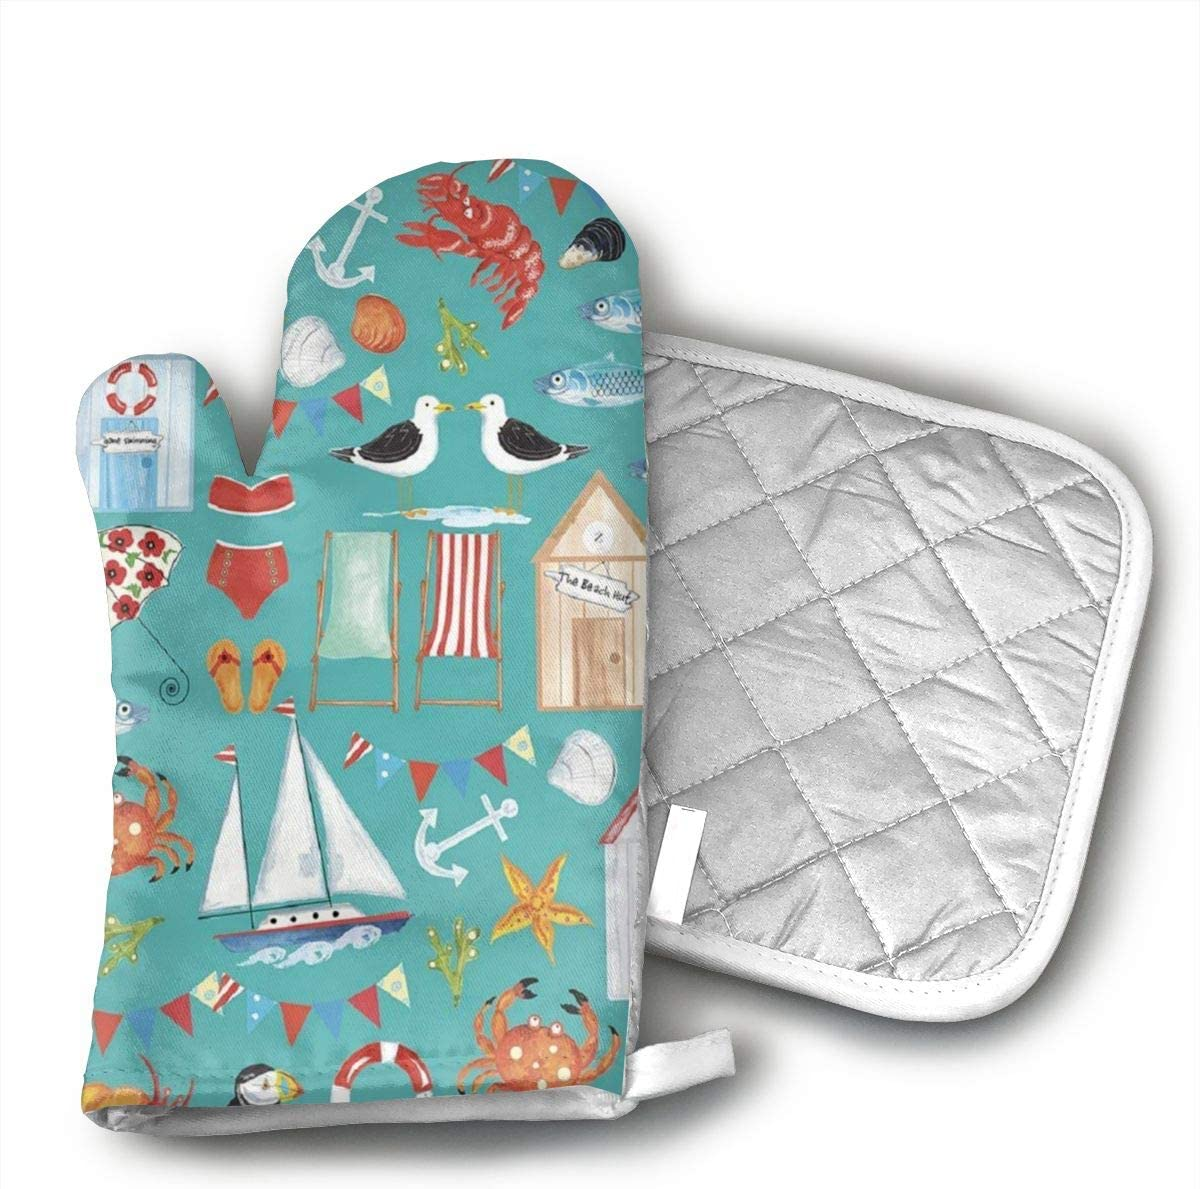 Beachy Summer Kitchen Cotton Coating Oven Mitts Heat Resistant Potholder Gloves Microwave Oven Glove